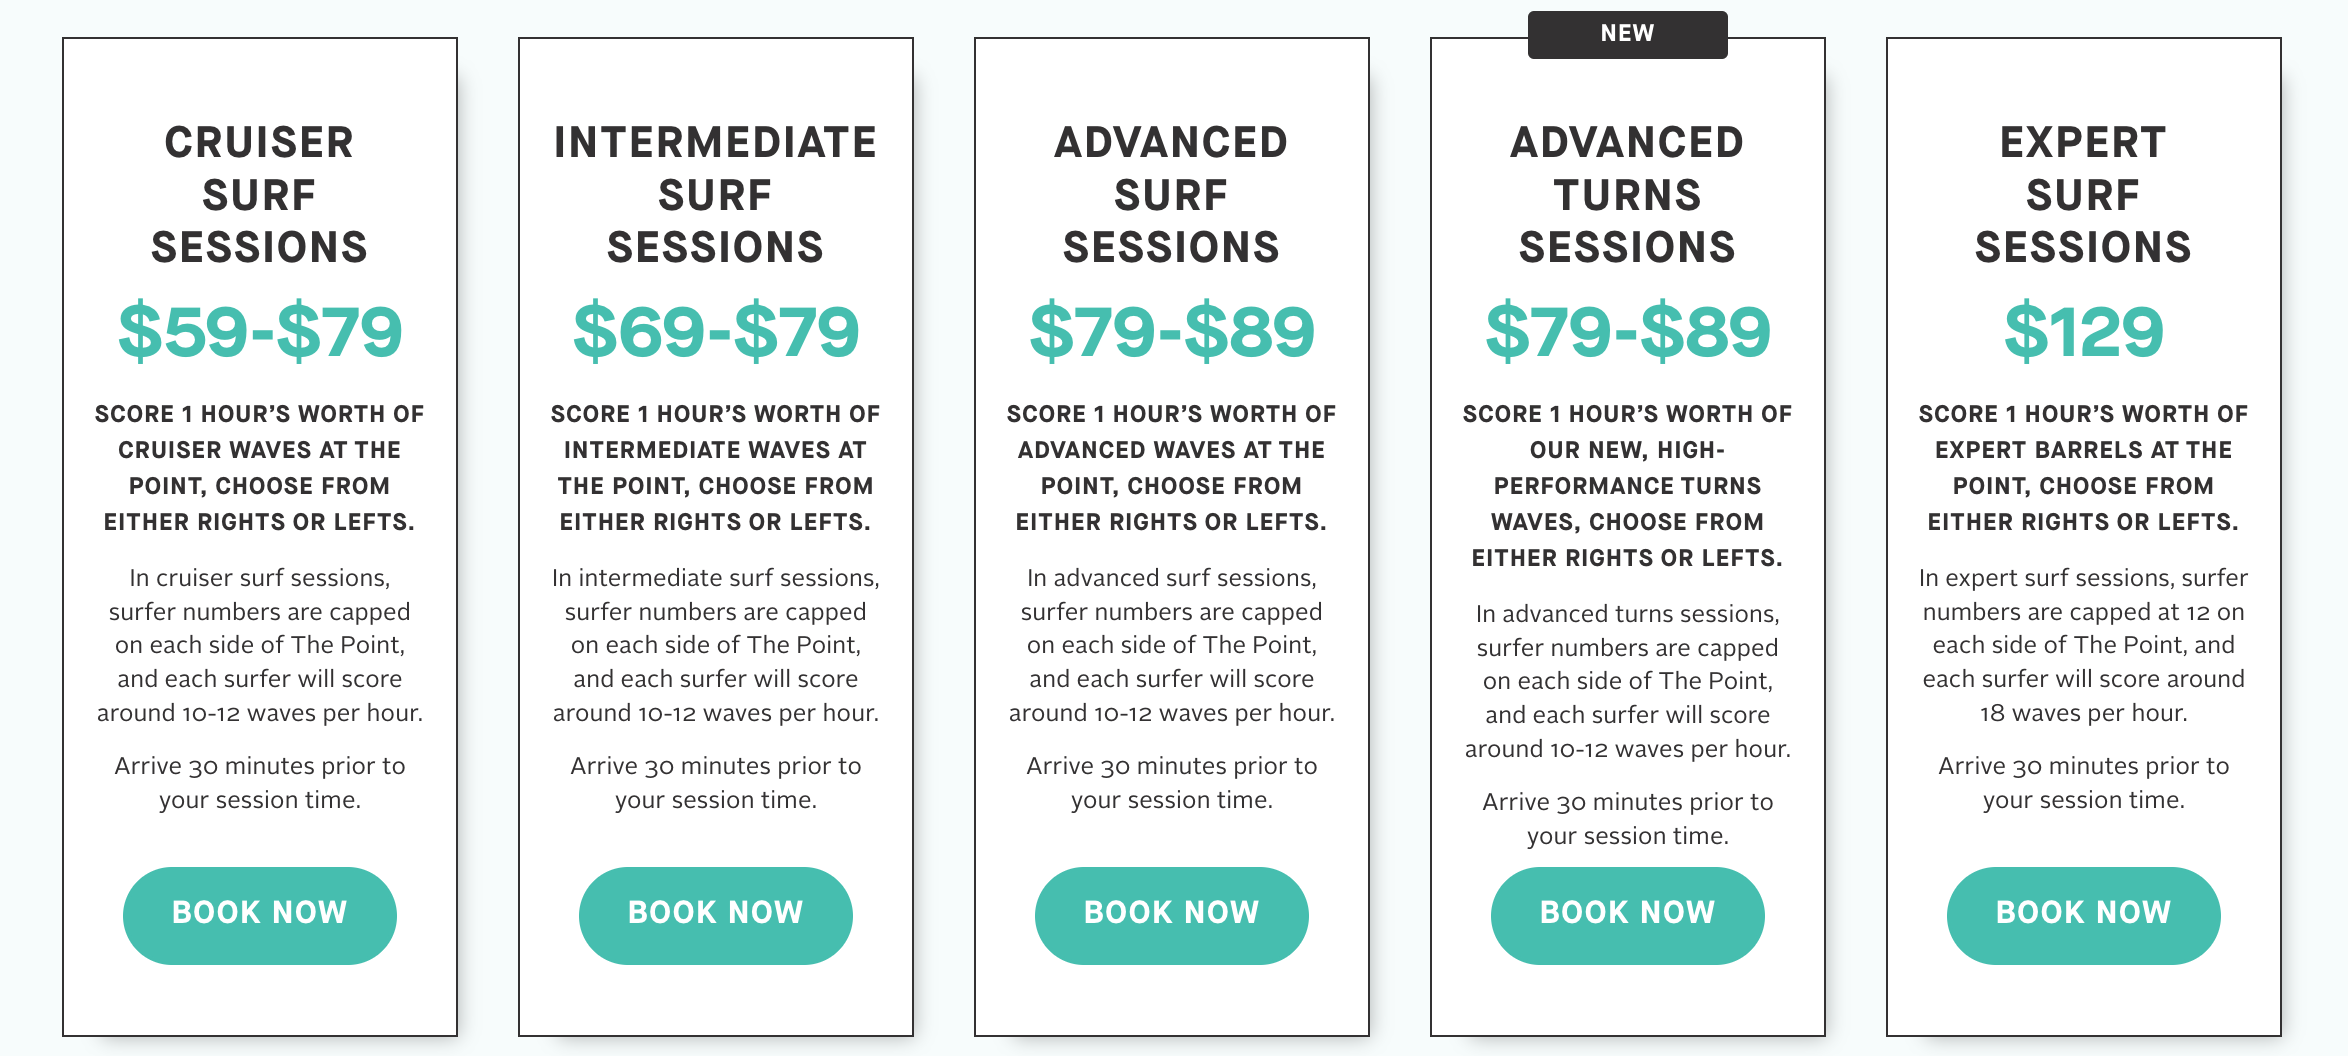 URBNSURF products